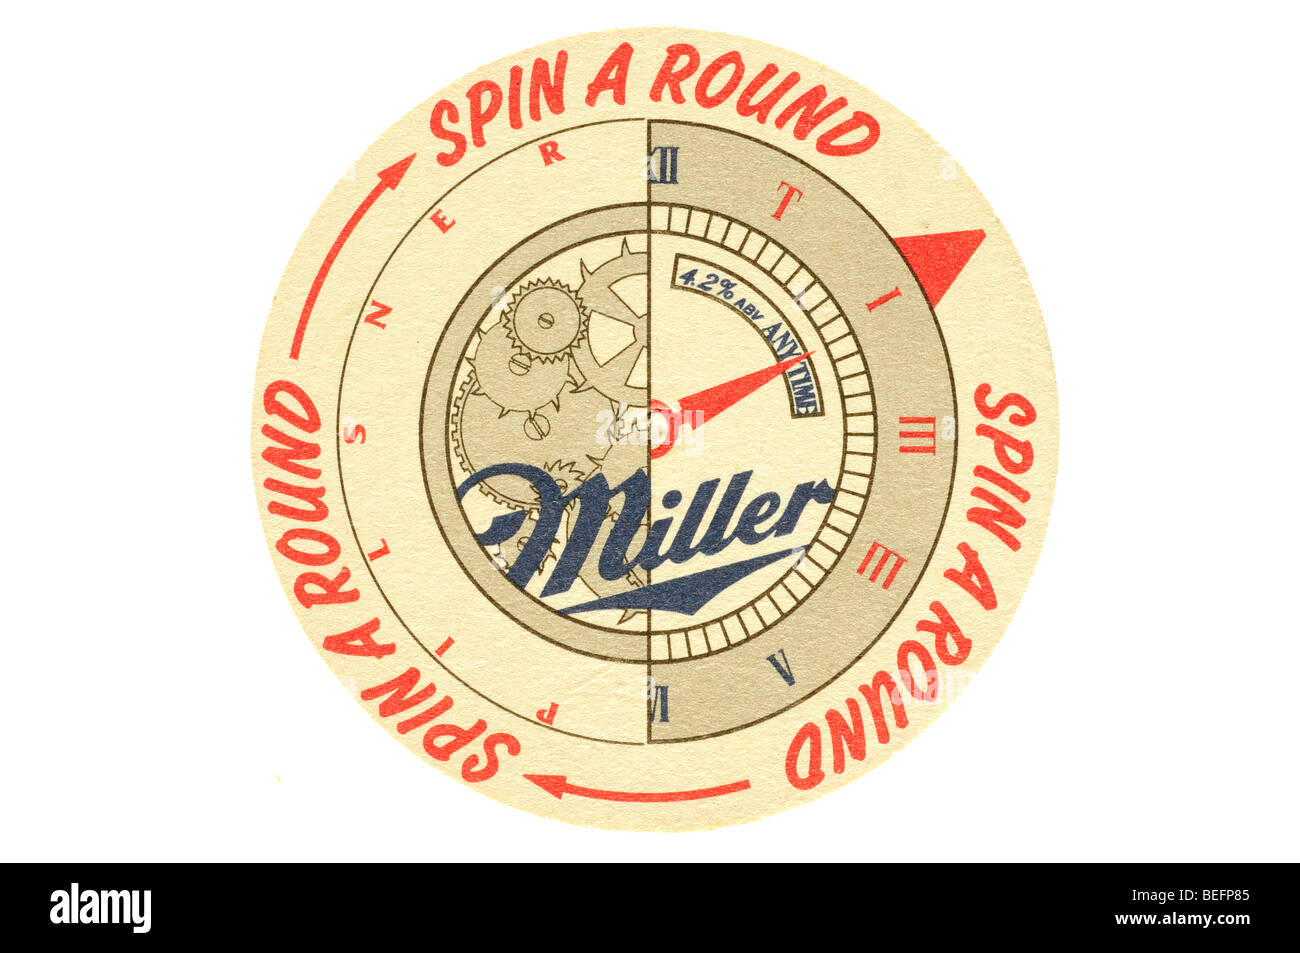 spin a round miller - Stock Image